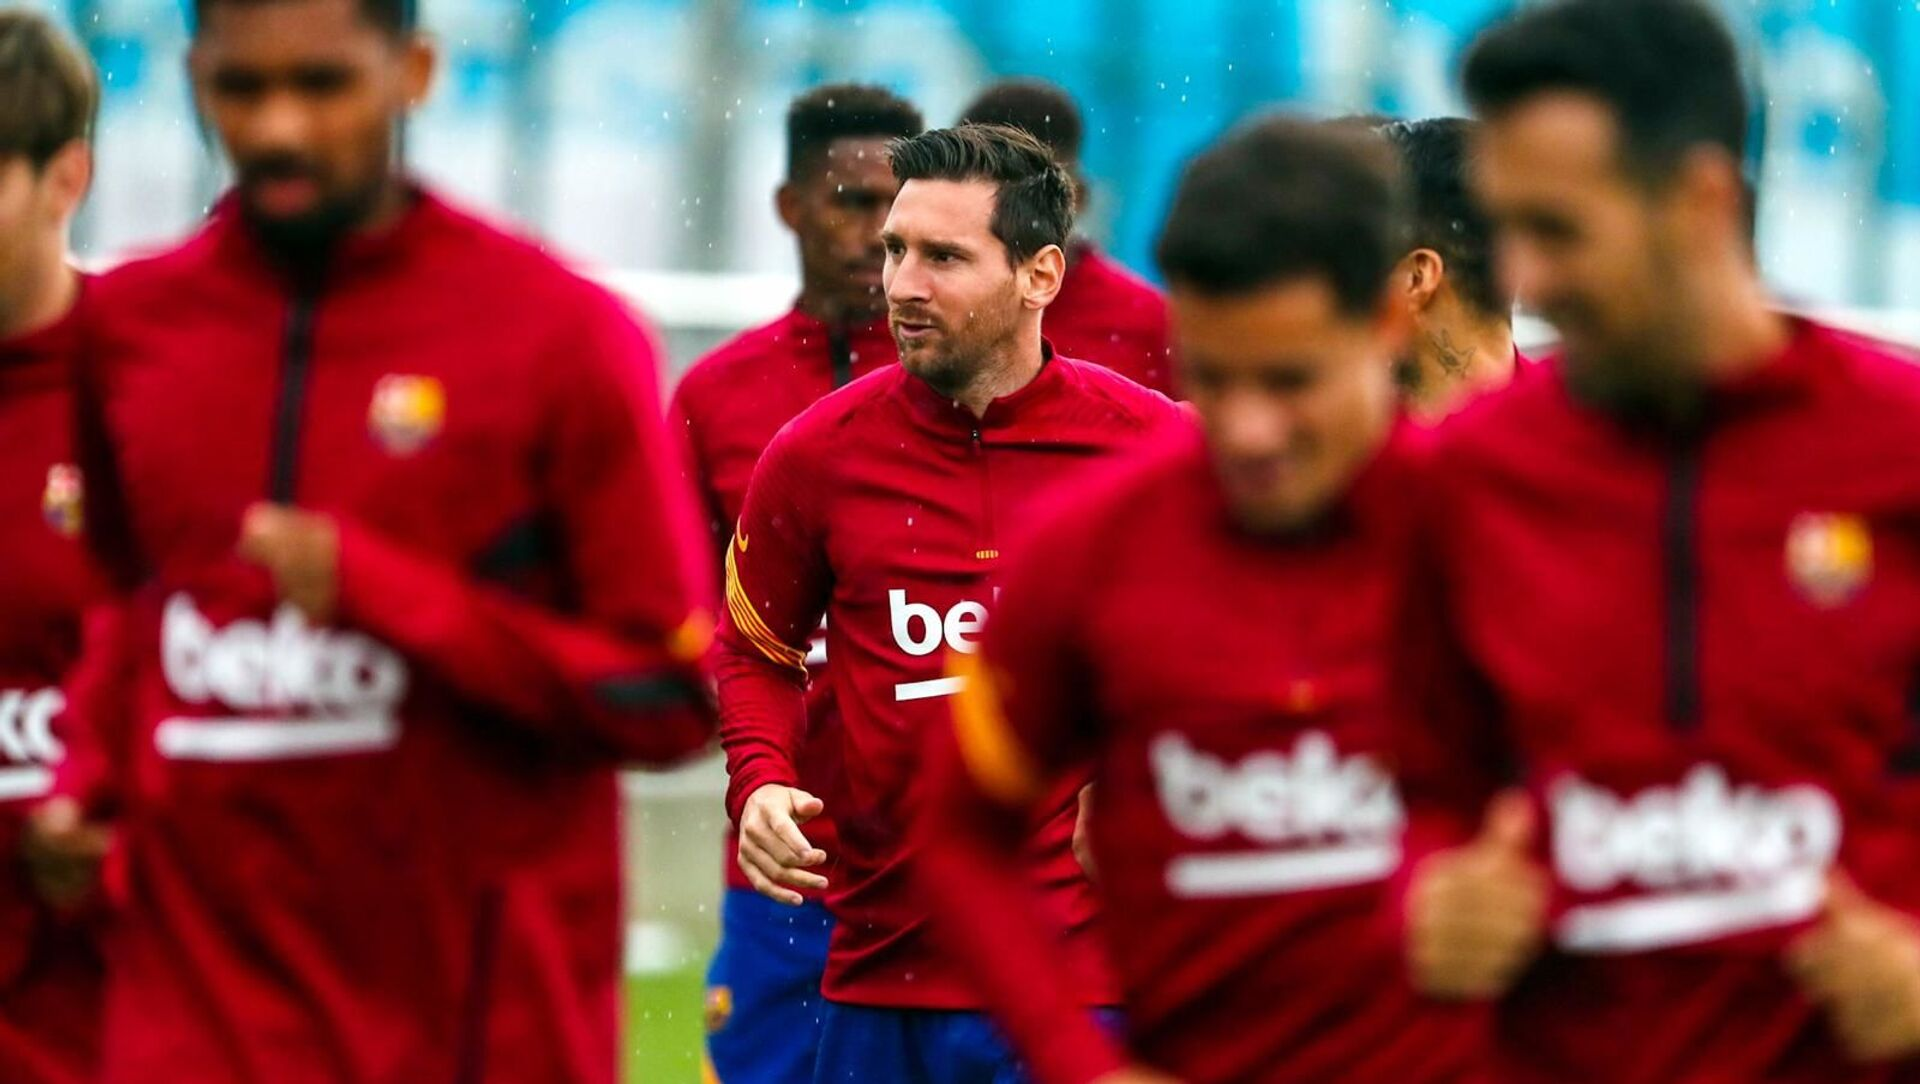 First workout of the day Lionel Messi - Sputnik International, 1920, 29.07.2021